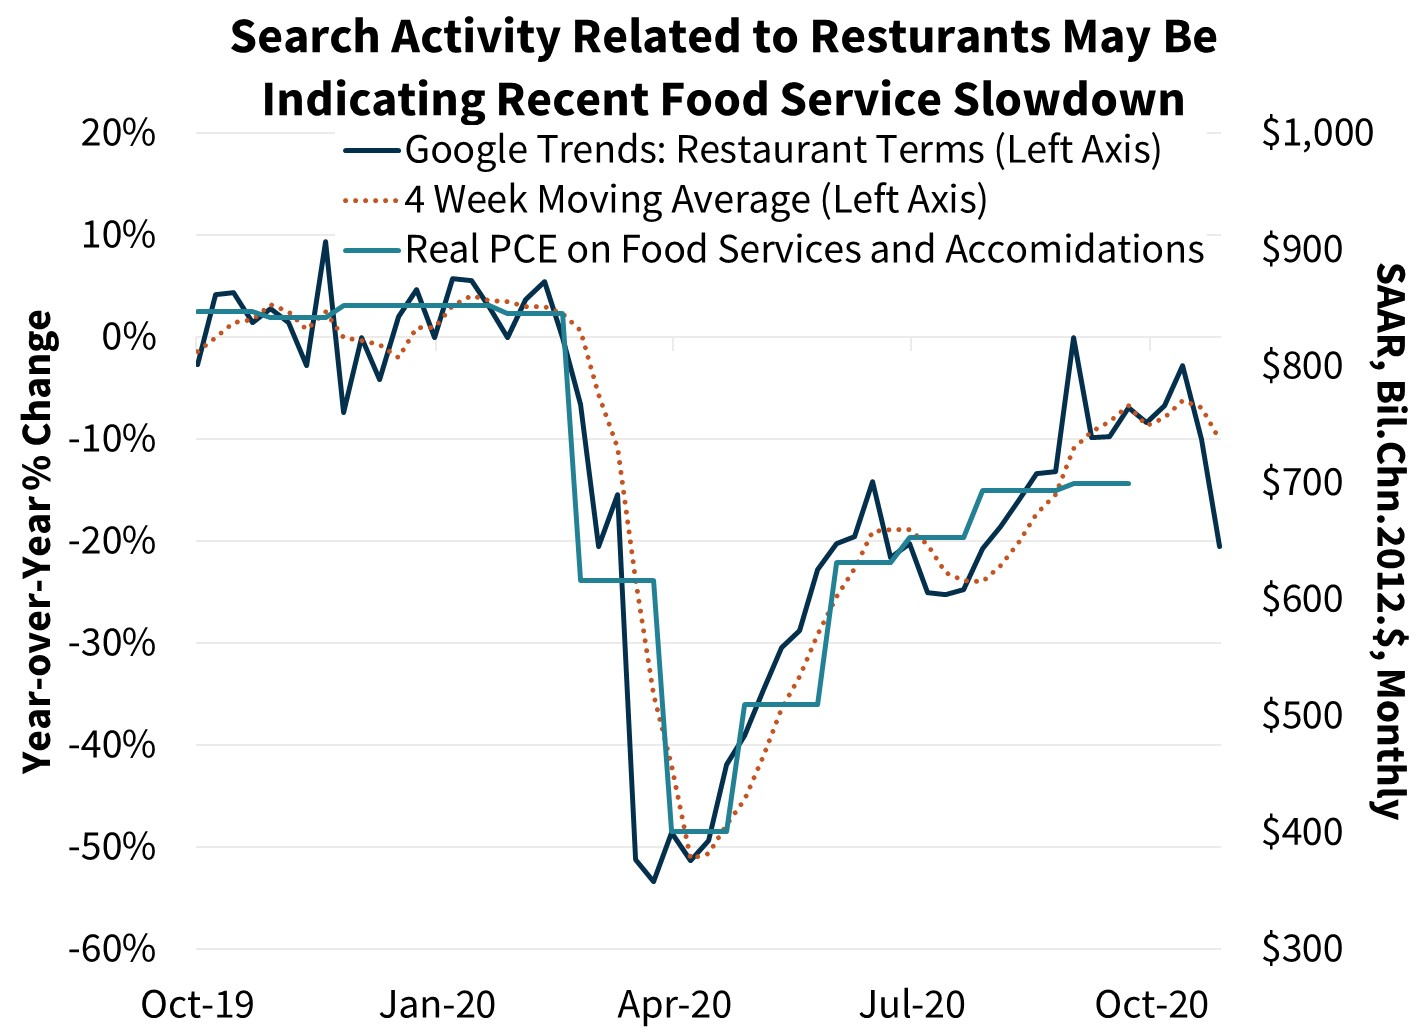 Search Activity Related to Restaurants May Be Indicating Recent Food Service Slowdown